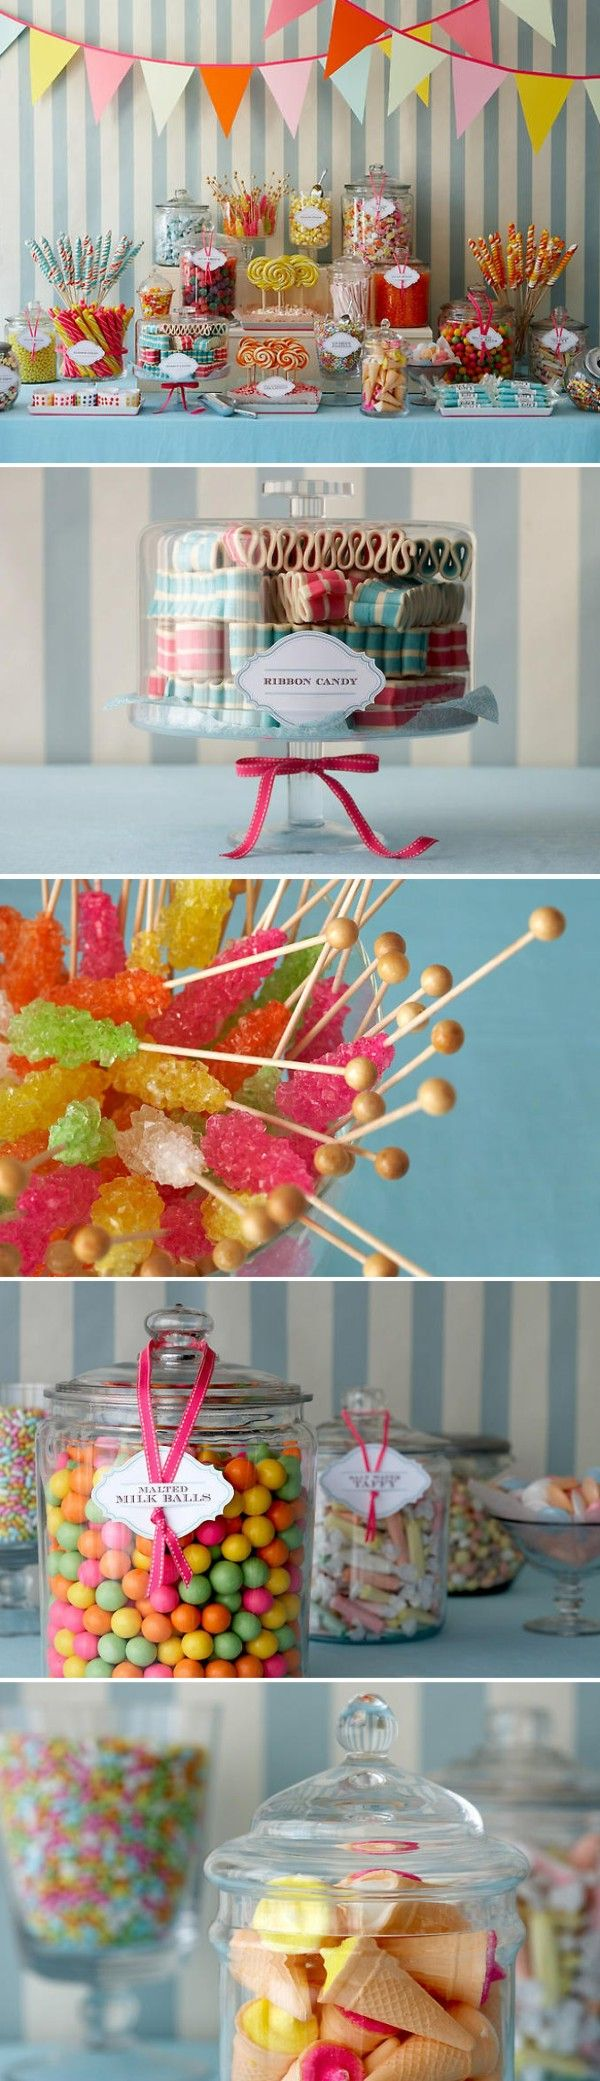 : Candybar, Candy Bars, Candy Buffet, Sweet Tables, Colors Candy, Candy Table, Desserts Bar, Parties Ideas, Desserts Tables